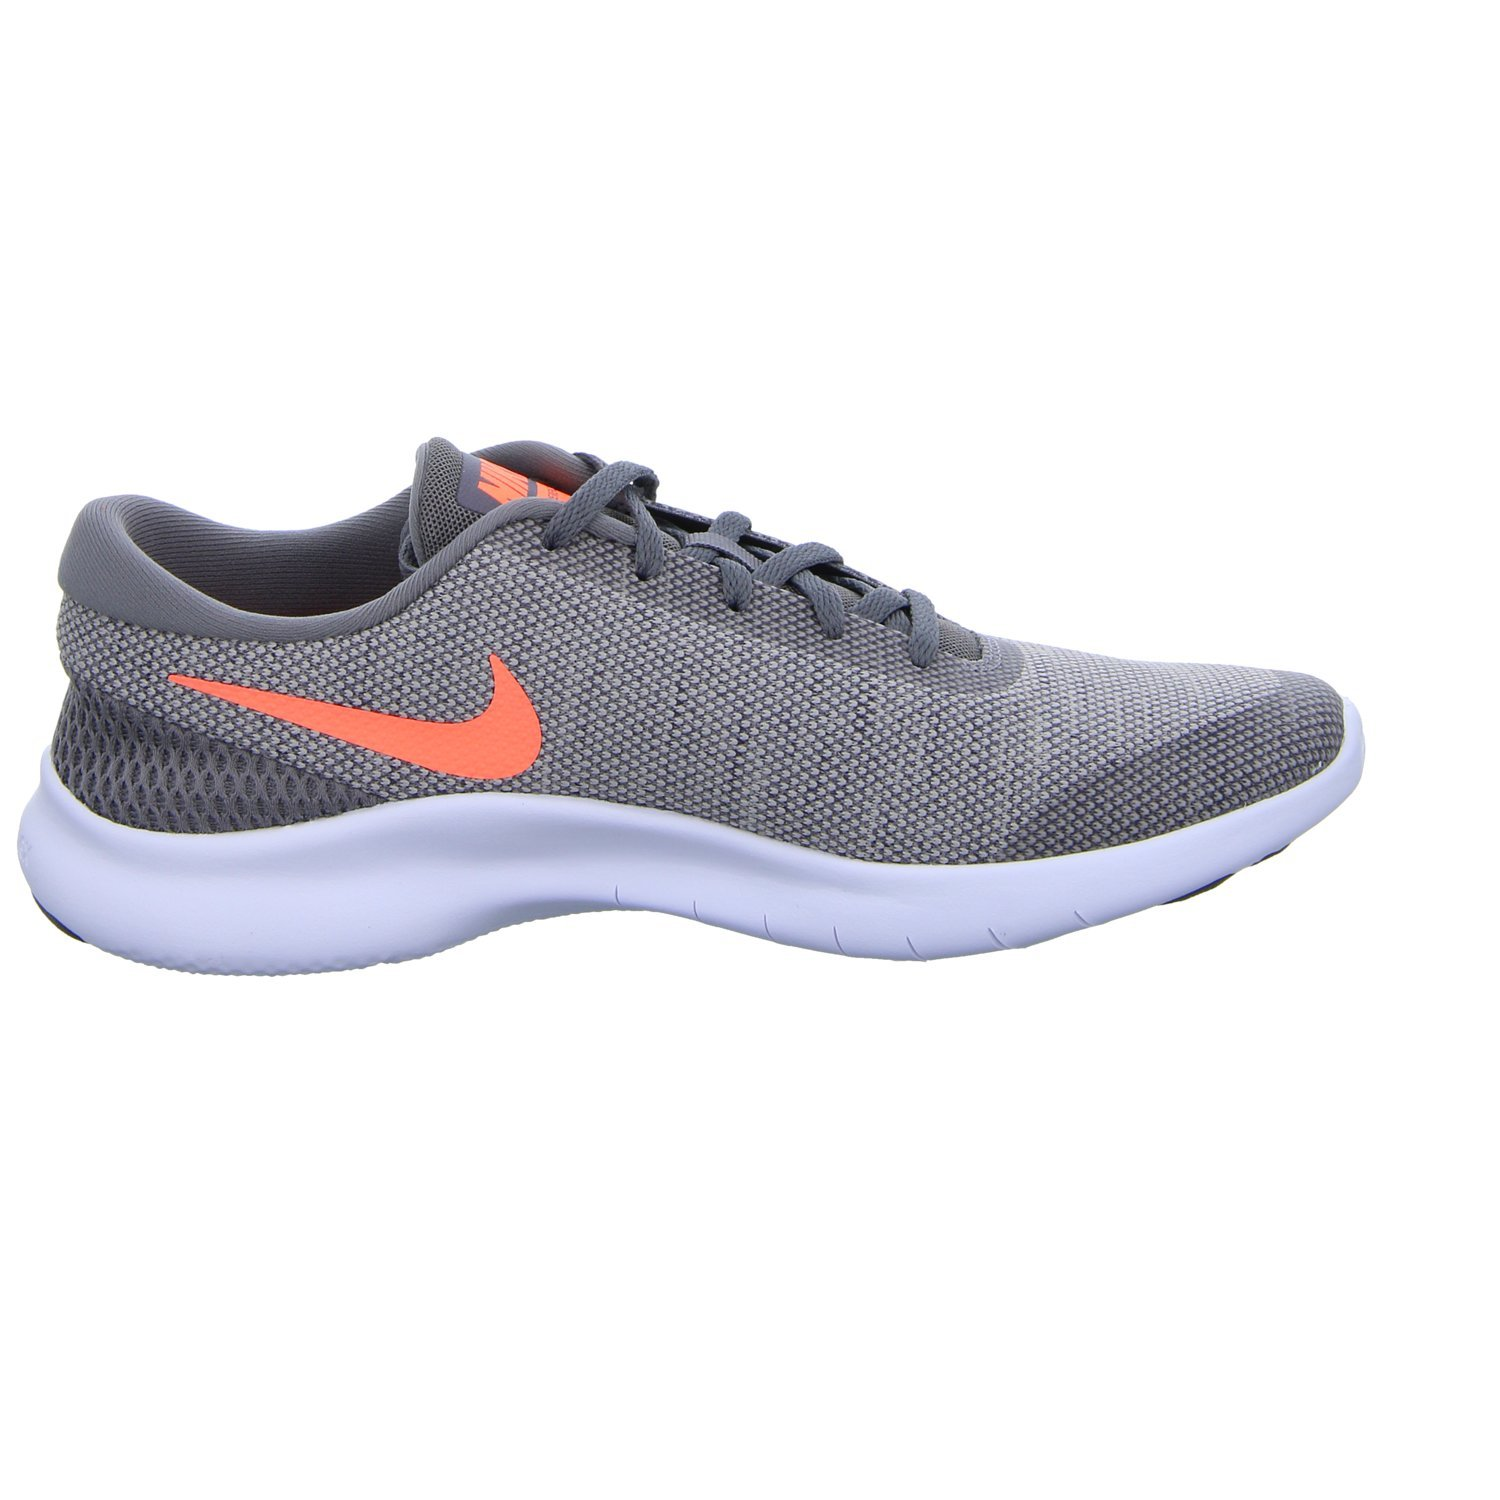 NIKE Women's Flex Experience 7 Running Shoe B075ZY6SSD 7.5 B(M) US|Gunsmoke/Crimson Pulse/Vast Grey White